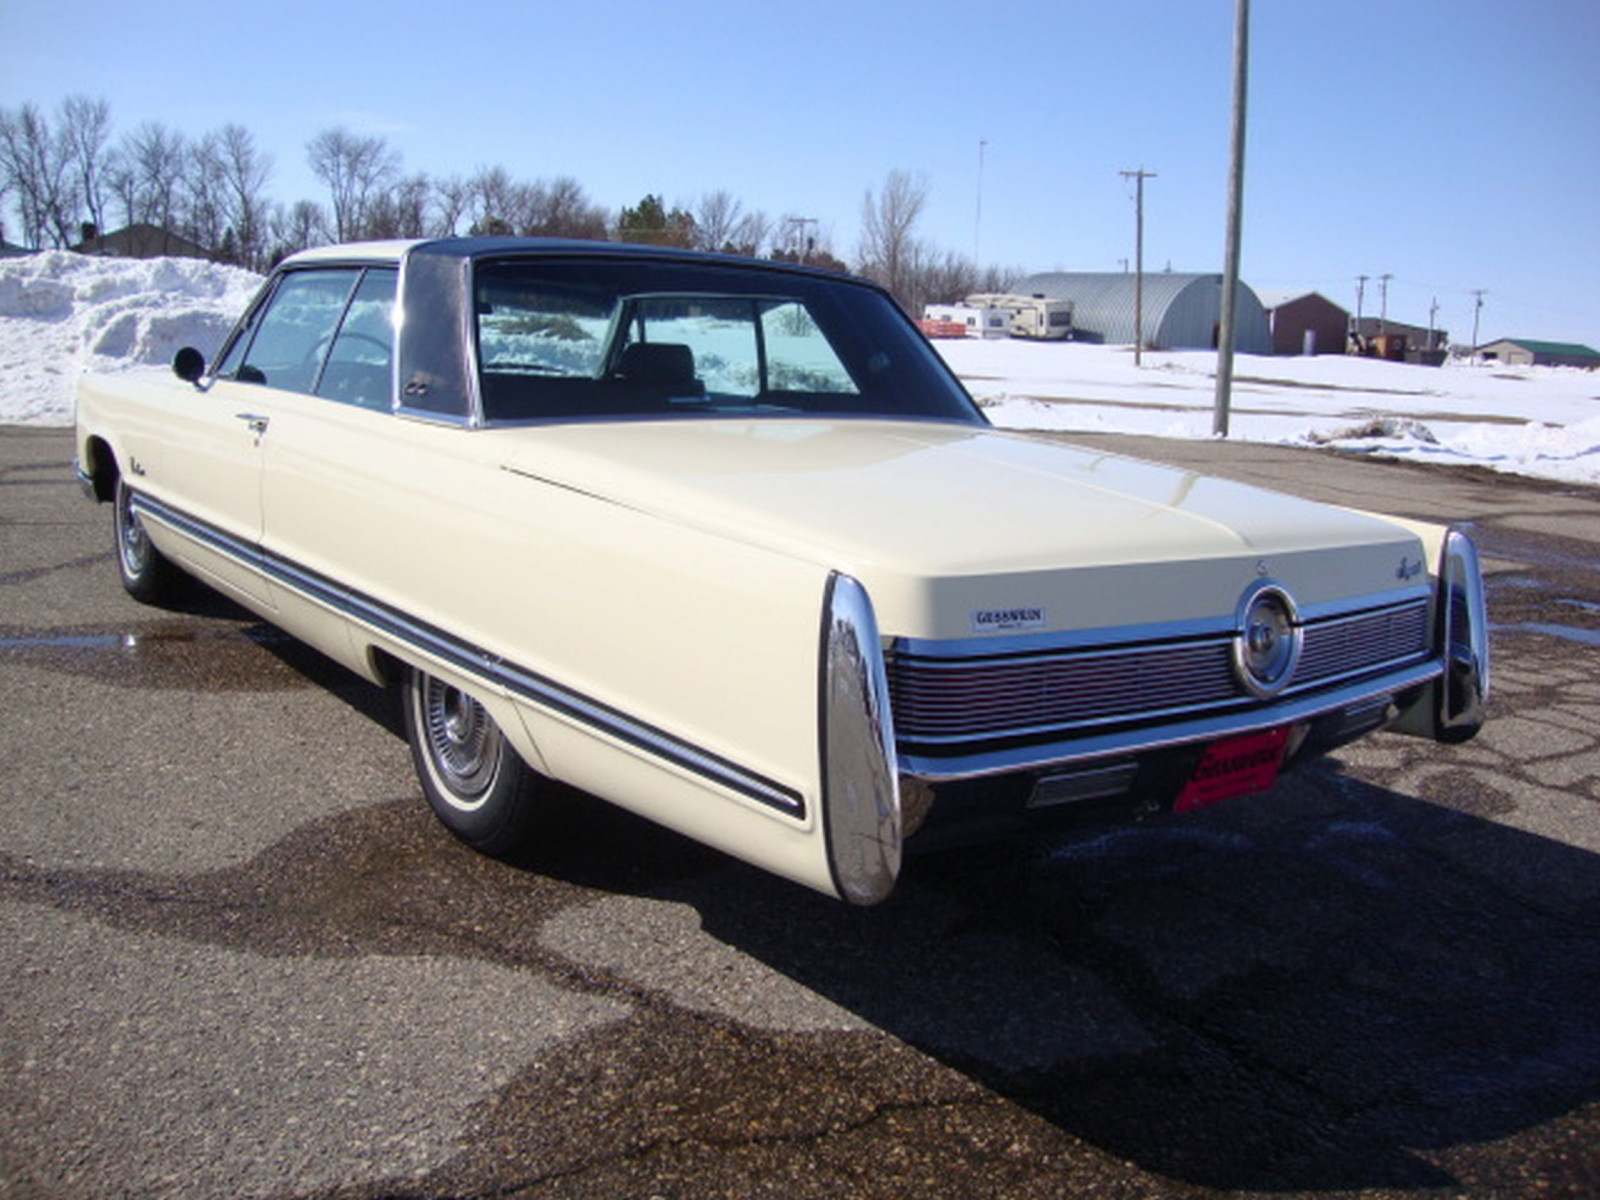 1967 Chrysler Imperial Crown Coupe - Image 4